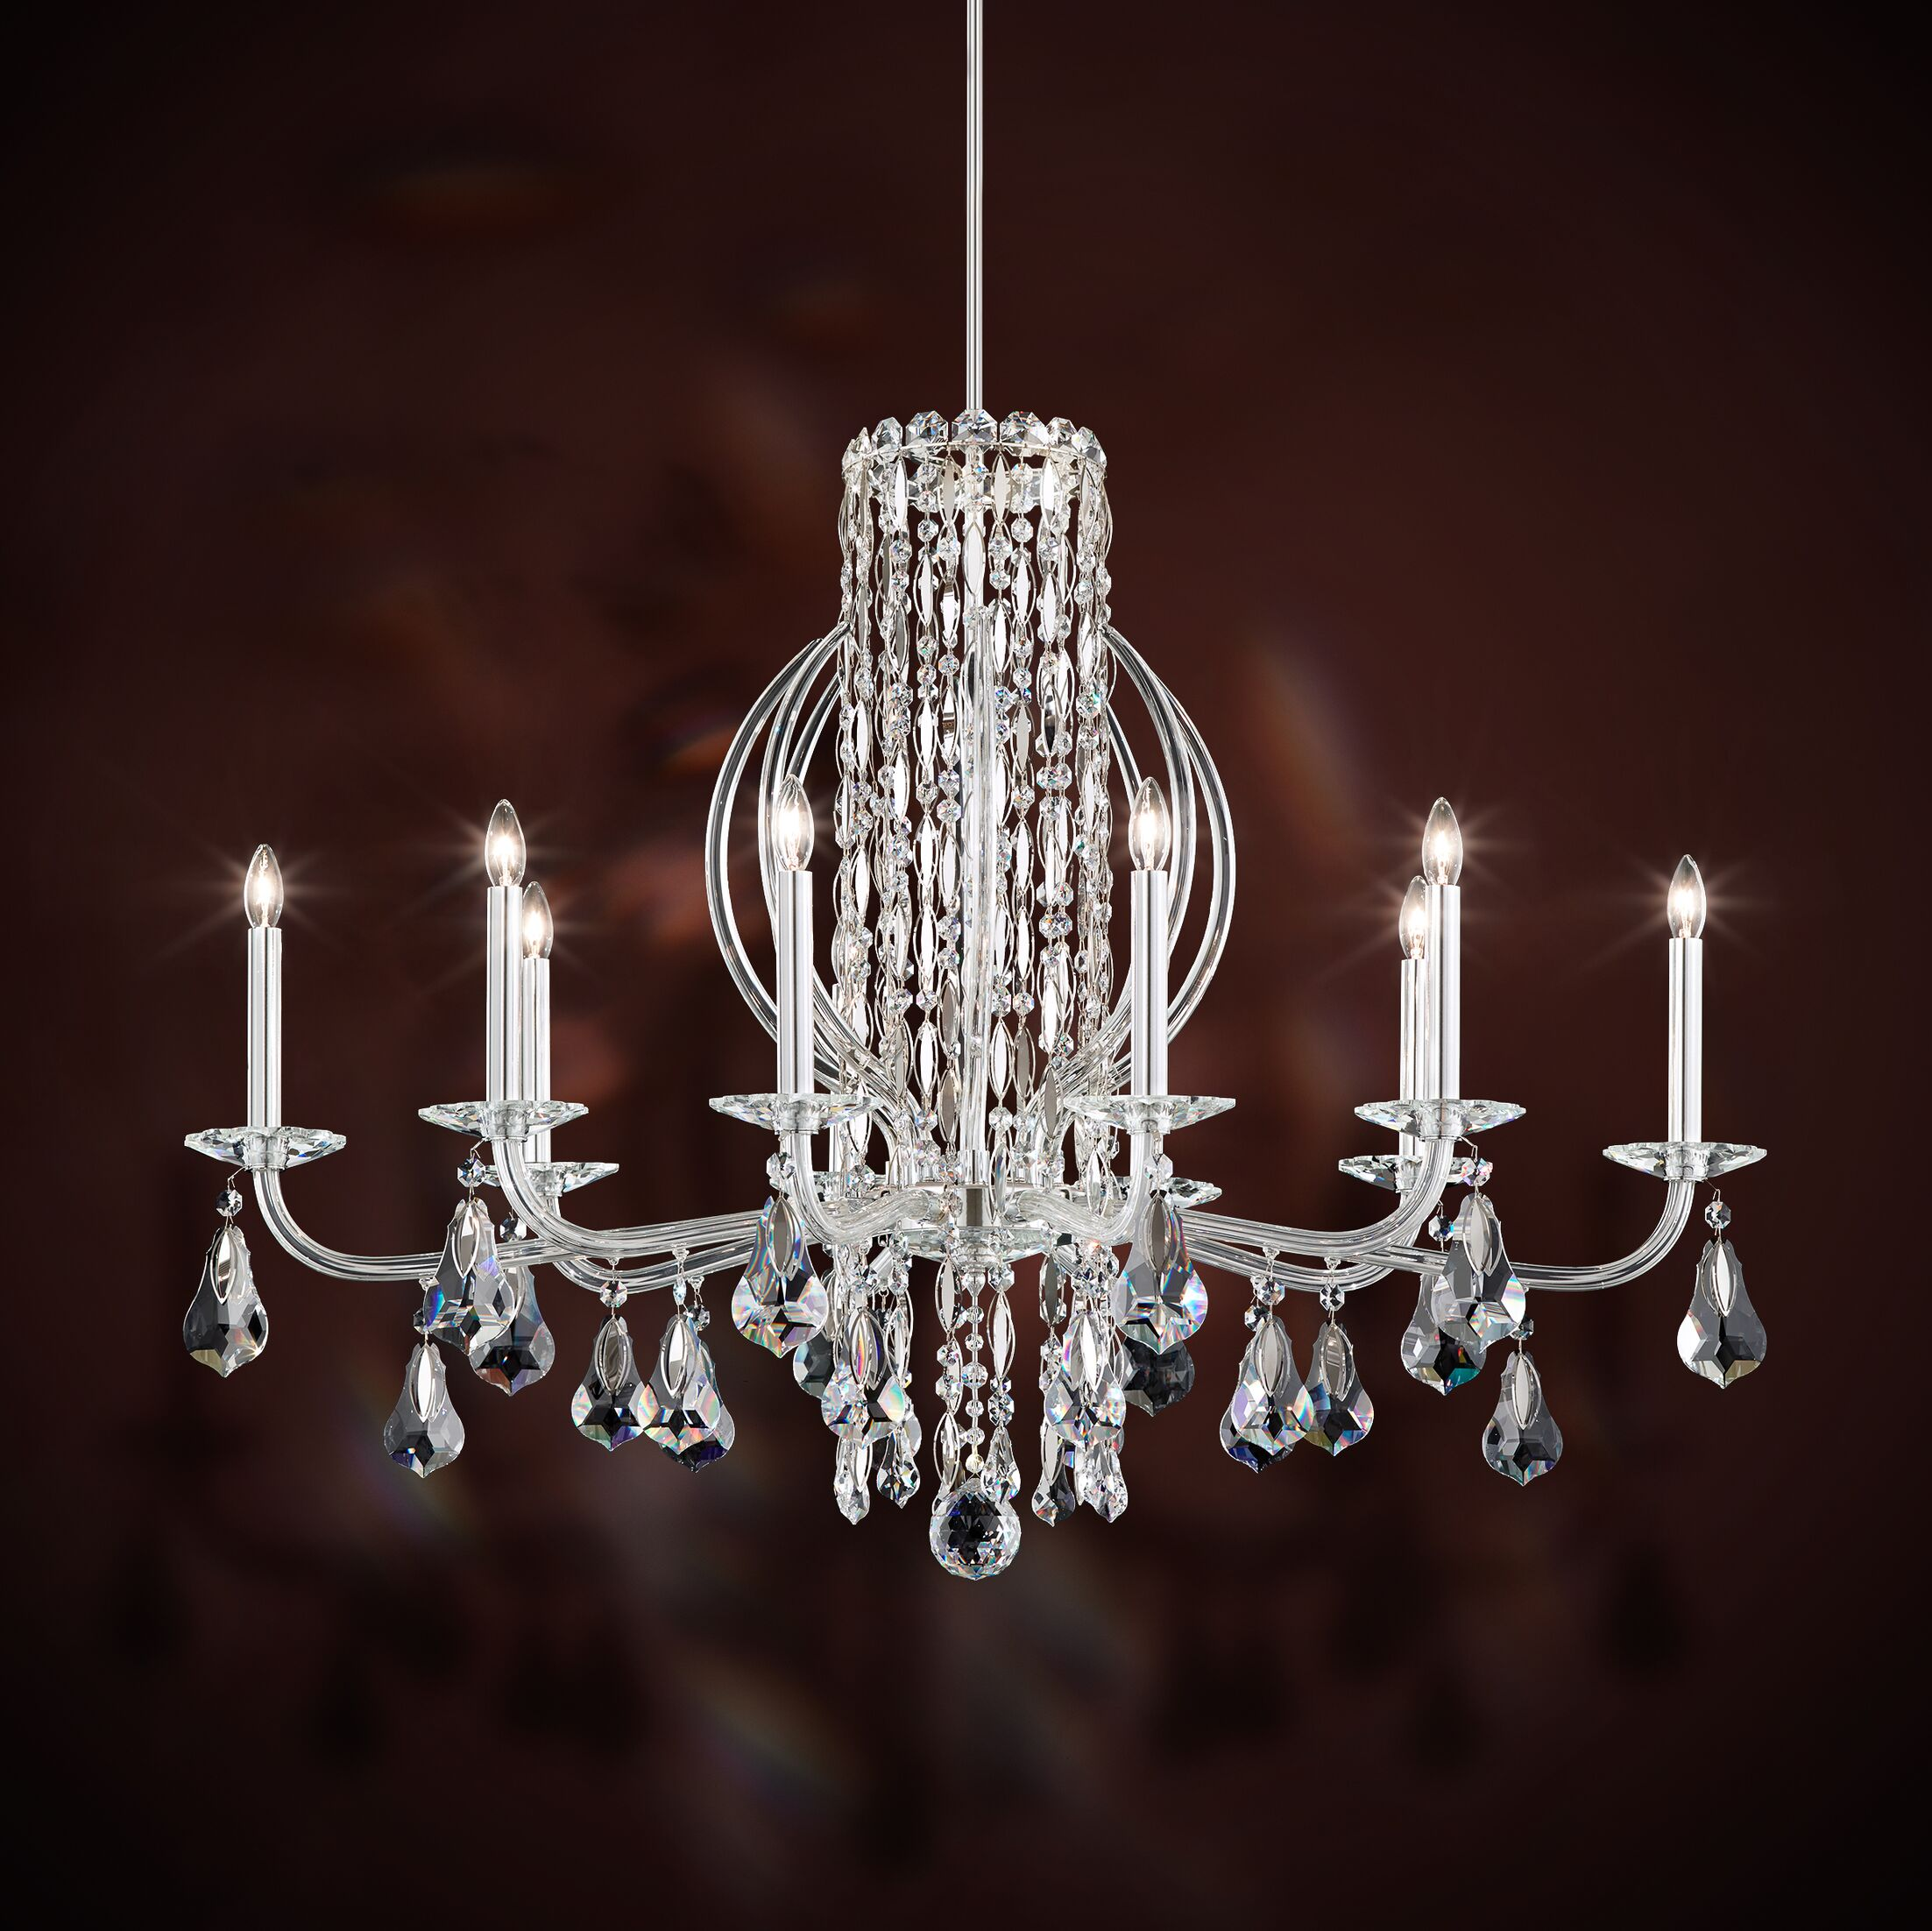 Sarella 10-Light Chandelier Finish: Antique Silver, Crystal: Heritage Clear Crystal